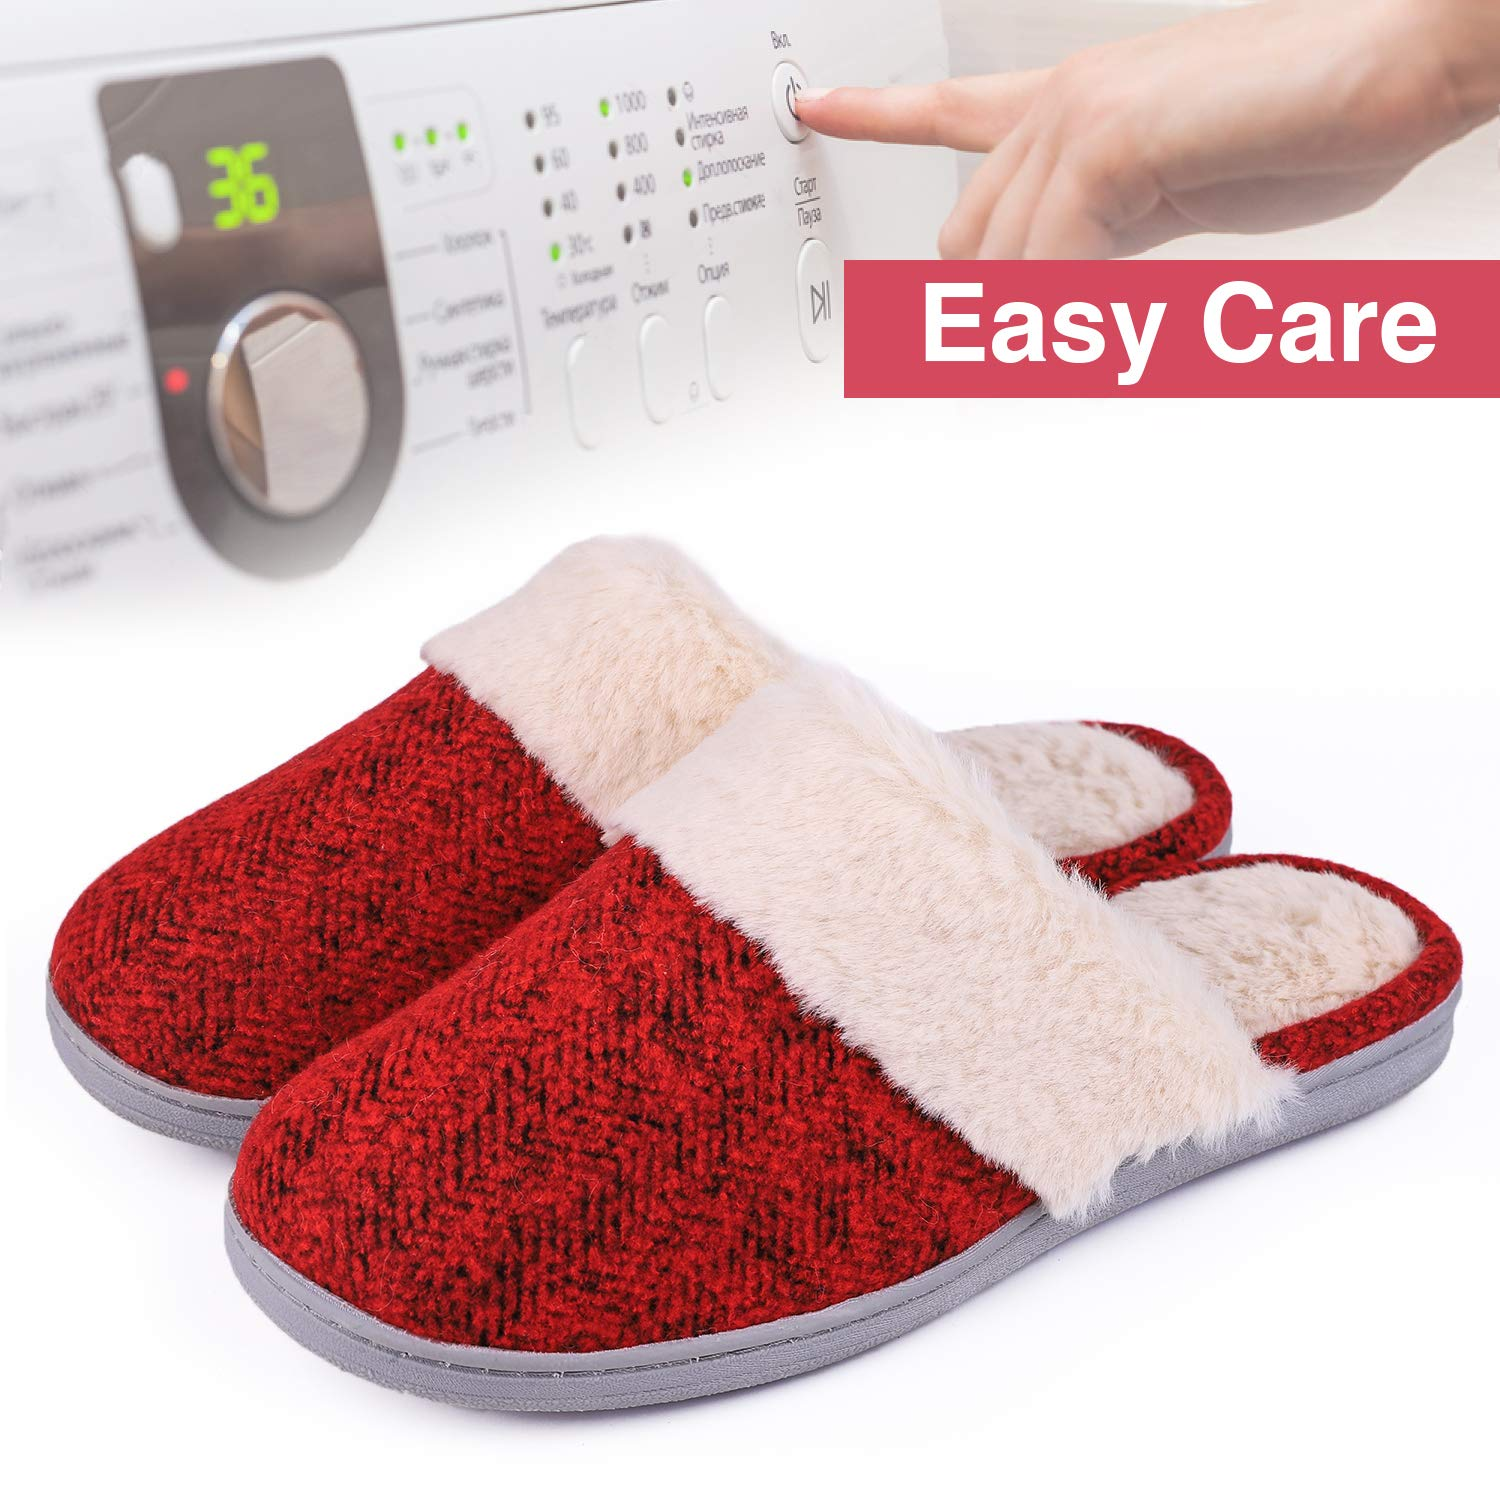 Womens Comfy Memory Foam Slide Slippers Wool-Like Plush Clog House Shoes w//Indoor Outdoor Sole